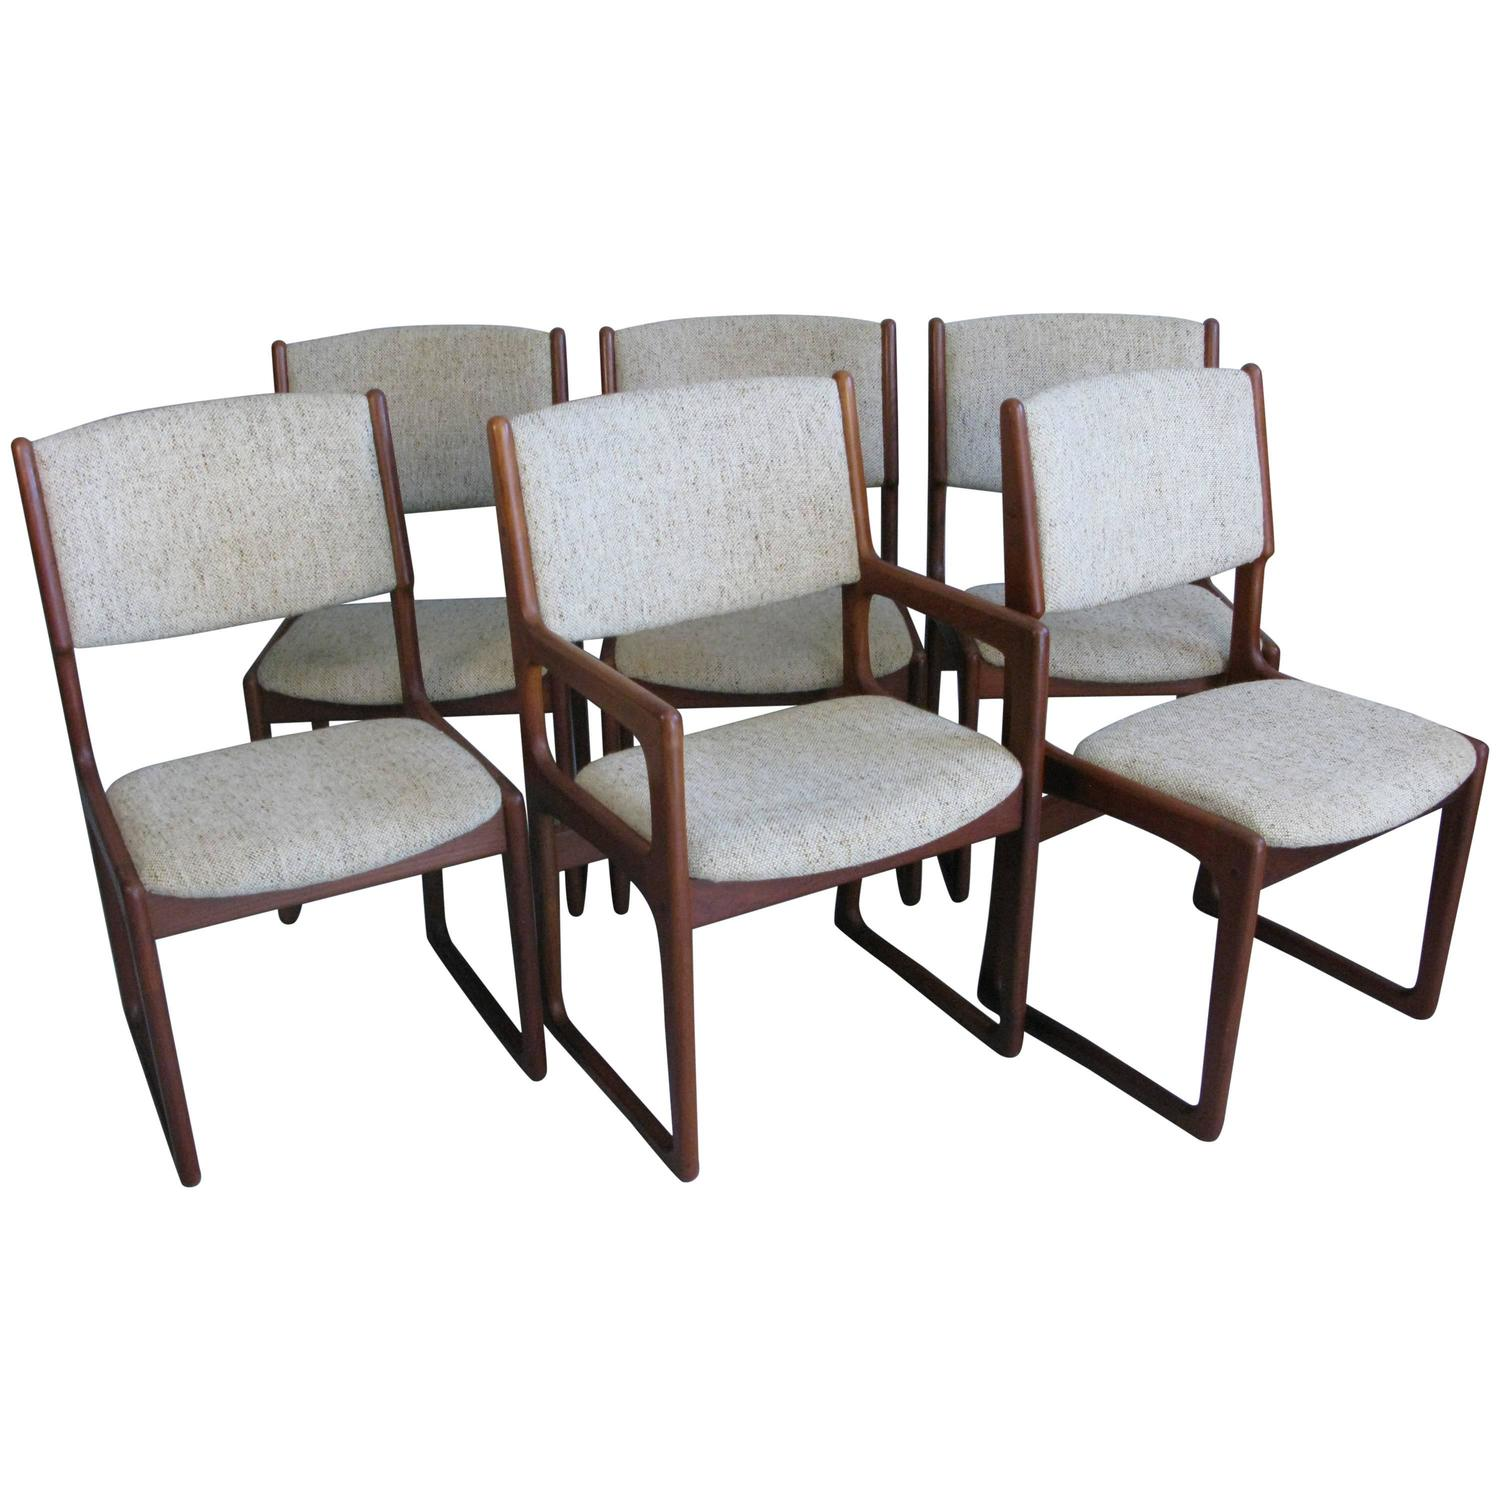 set of six 1960s danish design chairs by benny linden at 1stdibs